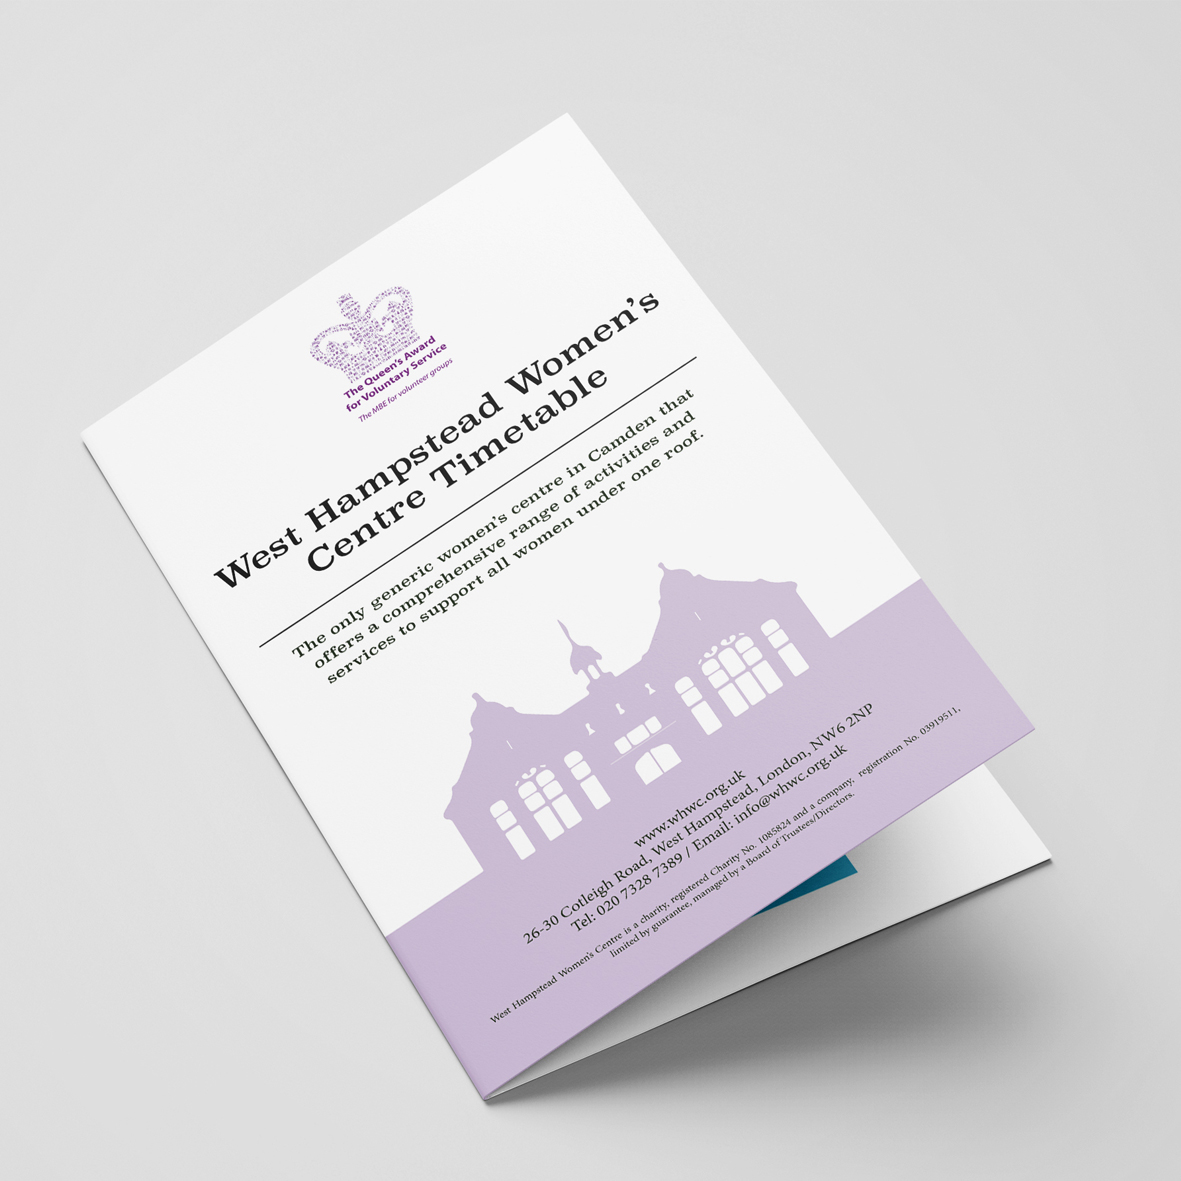 West Hampstead Women's Centre visual identity